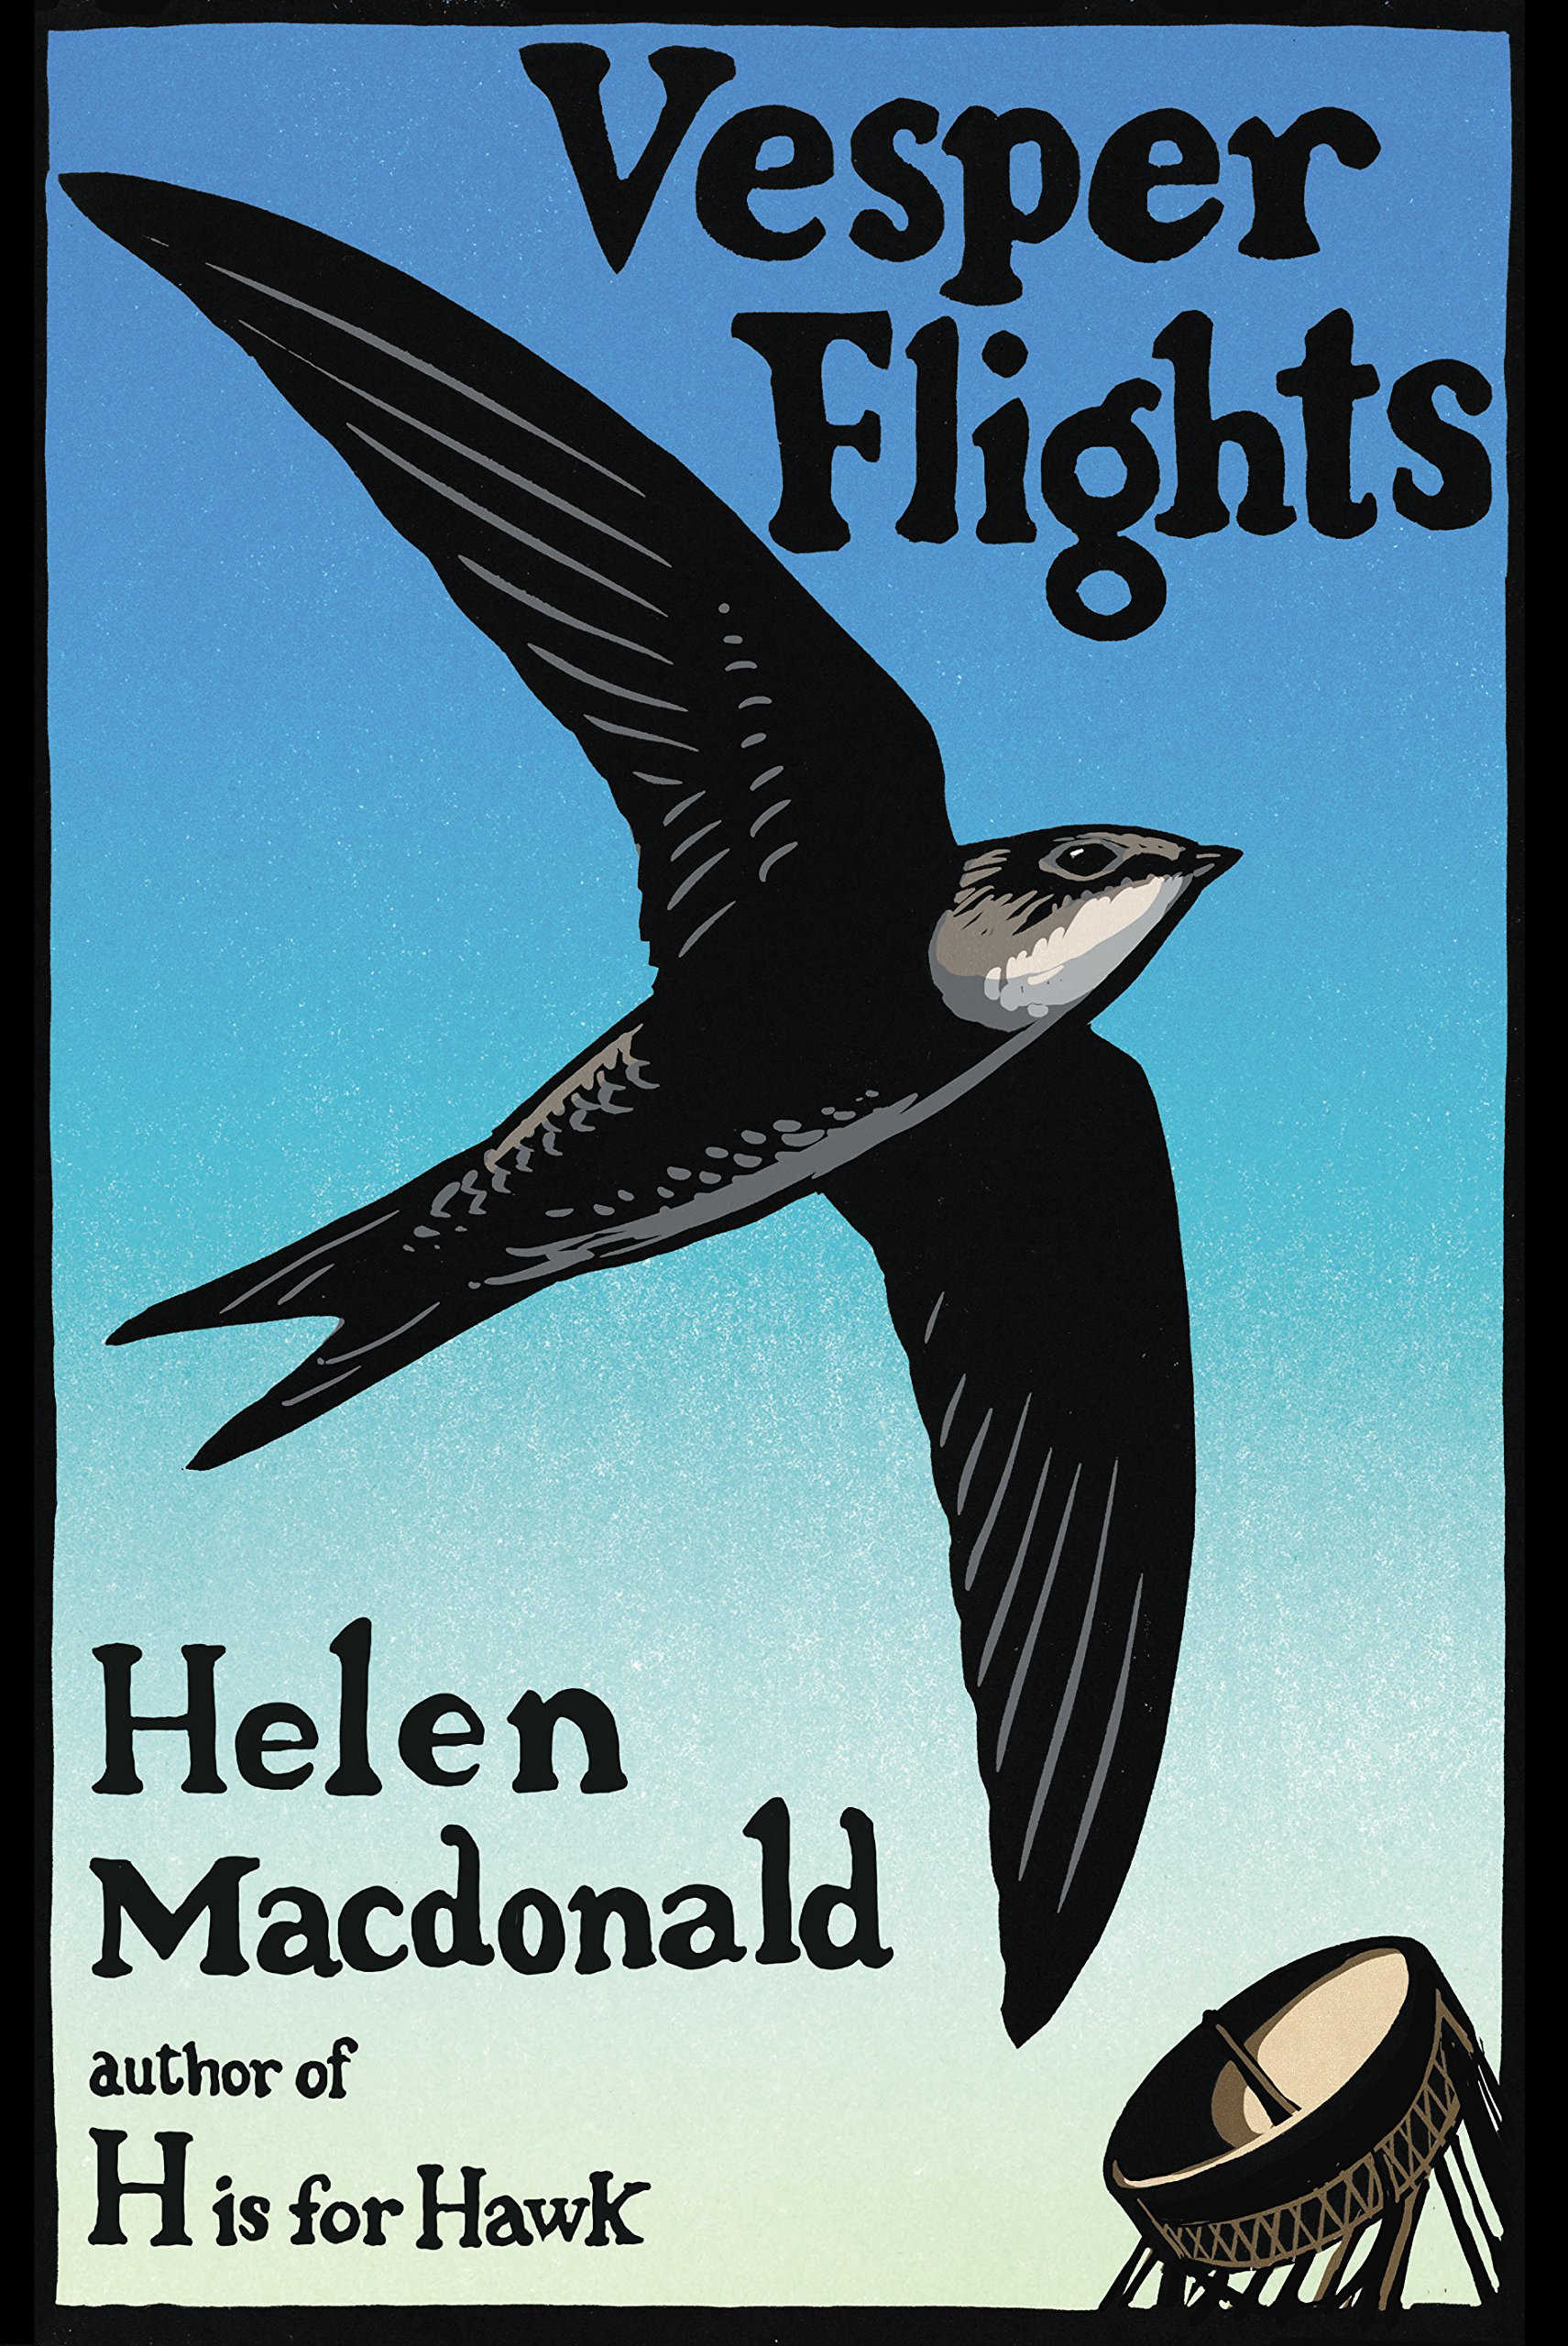 Vesper Flights by Helen Macdonald, Vintage, Rs 799